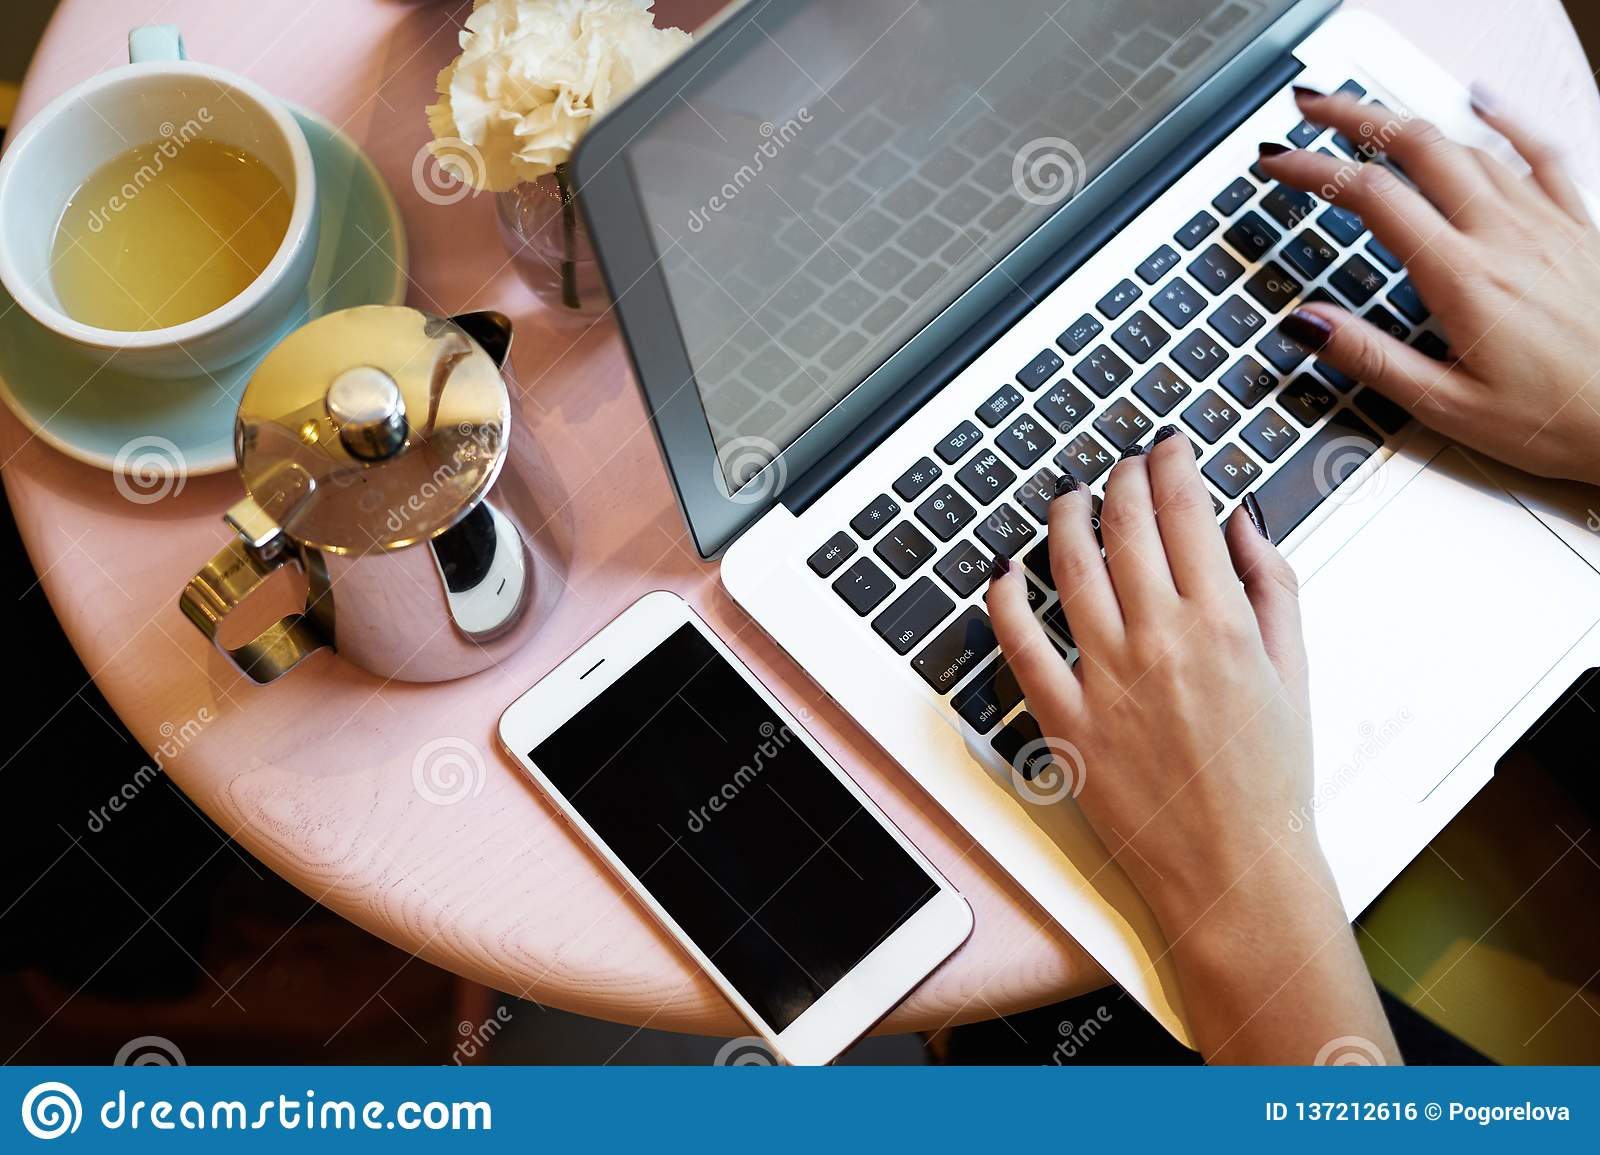 Close Up view of opened laptop screen, business woman working at sunny office near window daylight. Meeting in co-working or cafe,